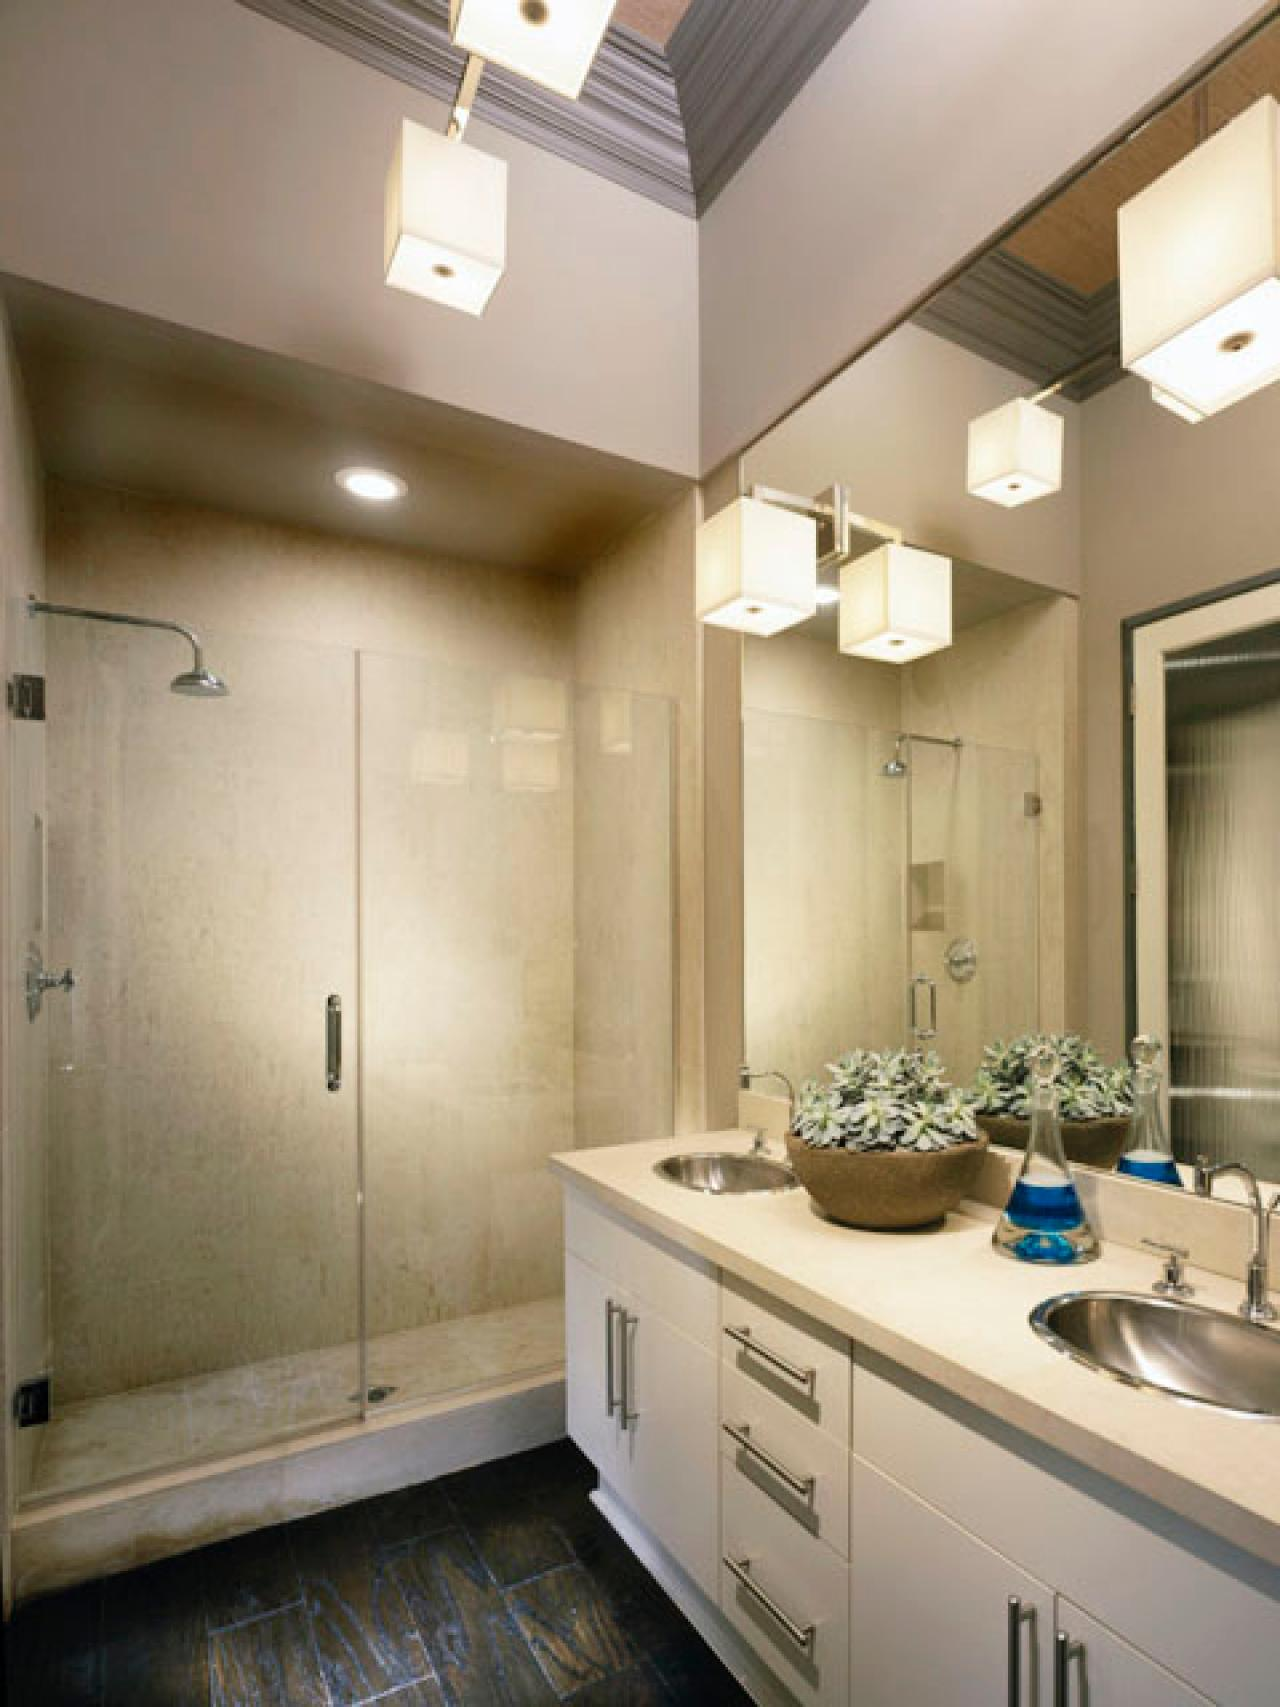 Bathroom design ideas: choose walls, ceiling, layout - 70 photos 90